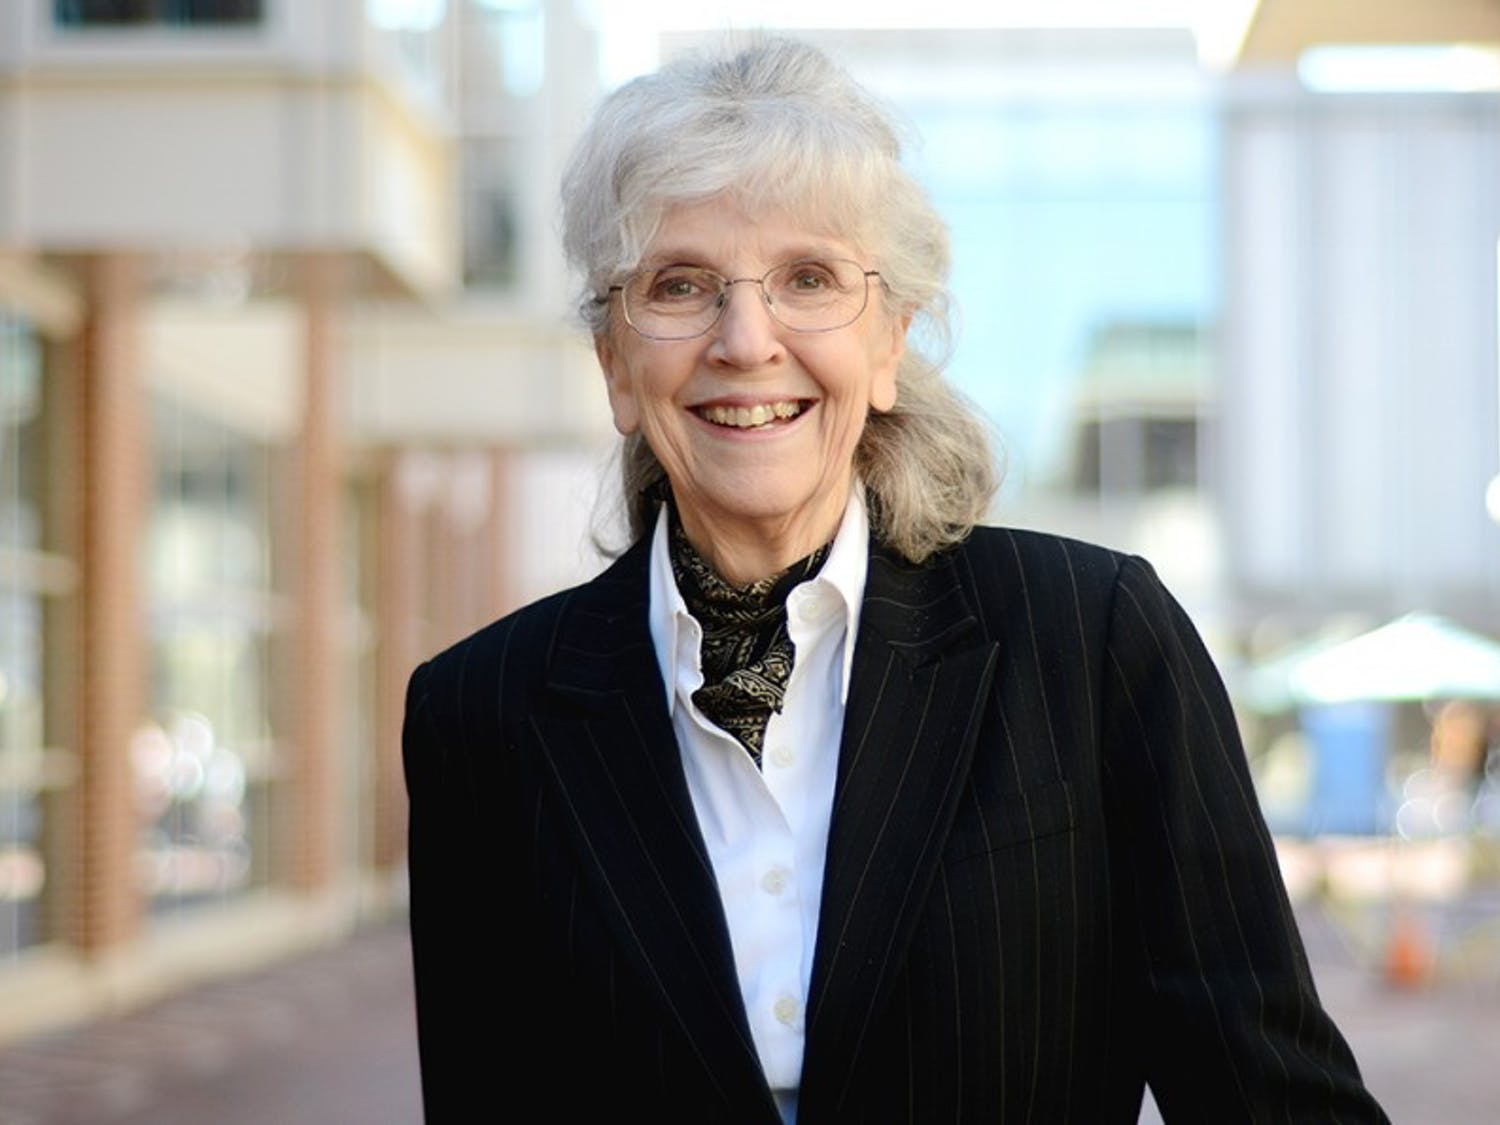 Dorothy Bernholz, founder of Student Legal Services, has spent over 30 years fighting for the legal rights of  students at UNC Chapel Hill.